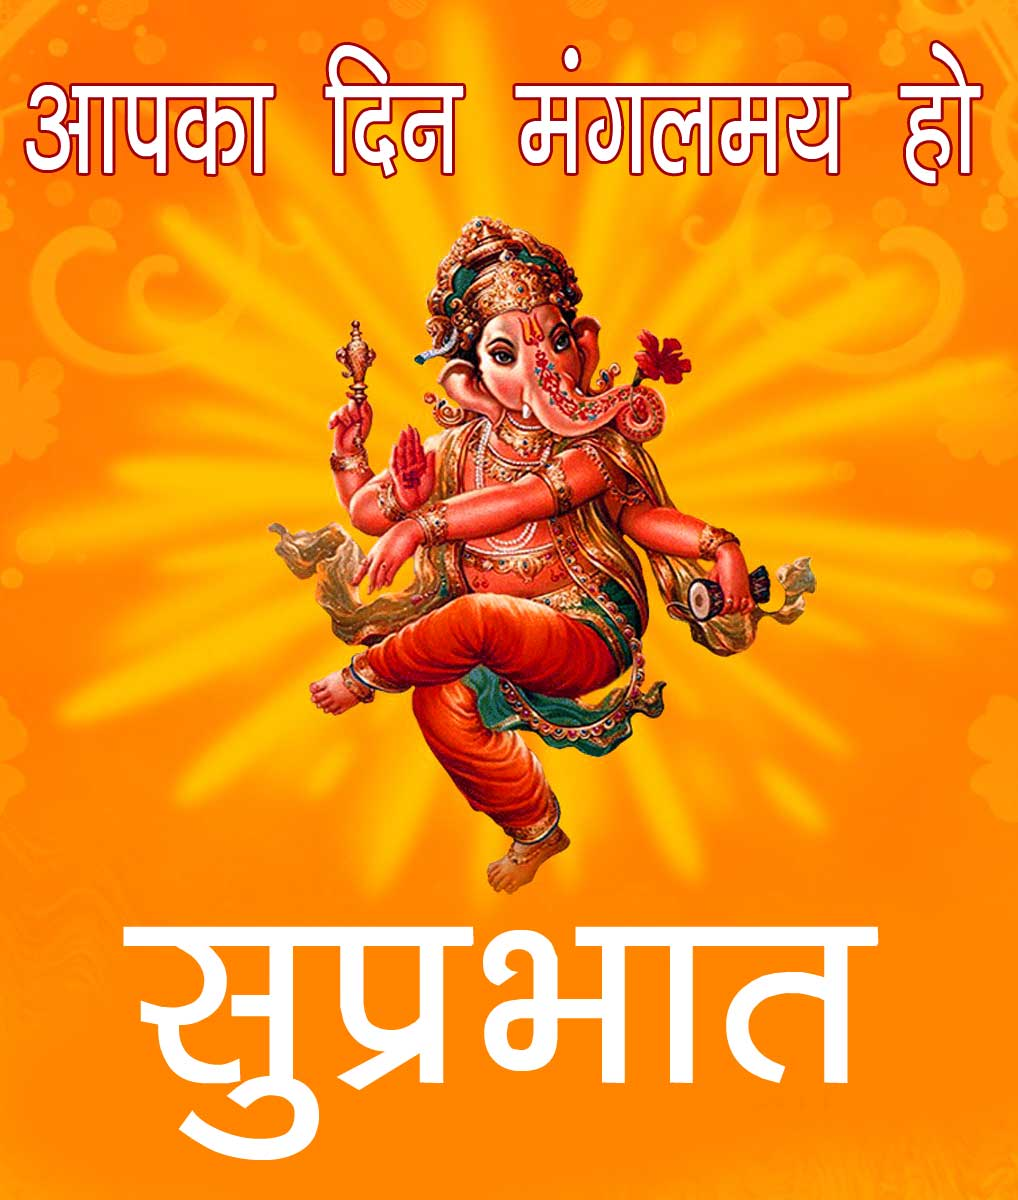 Lord God Ganesha Ji Good Morning Pics Free HD